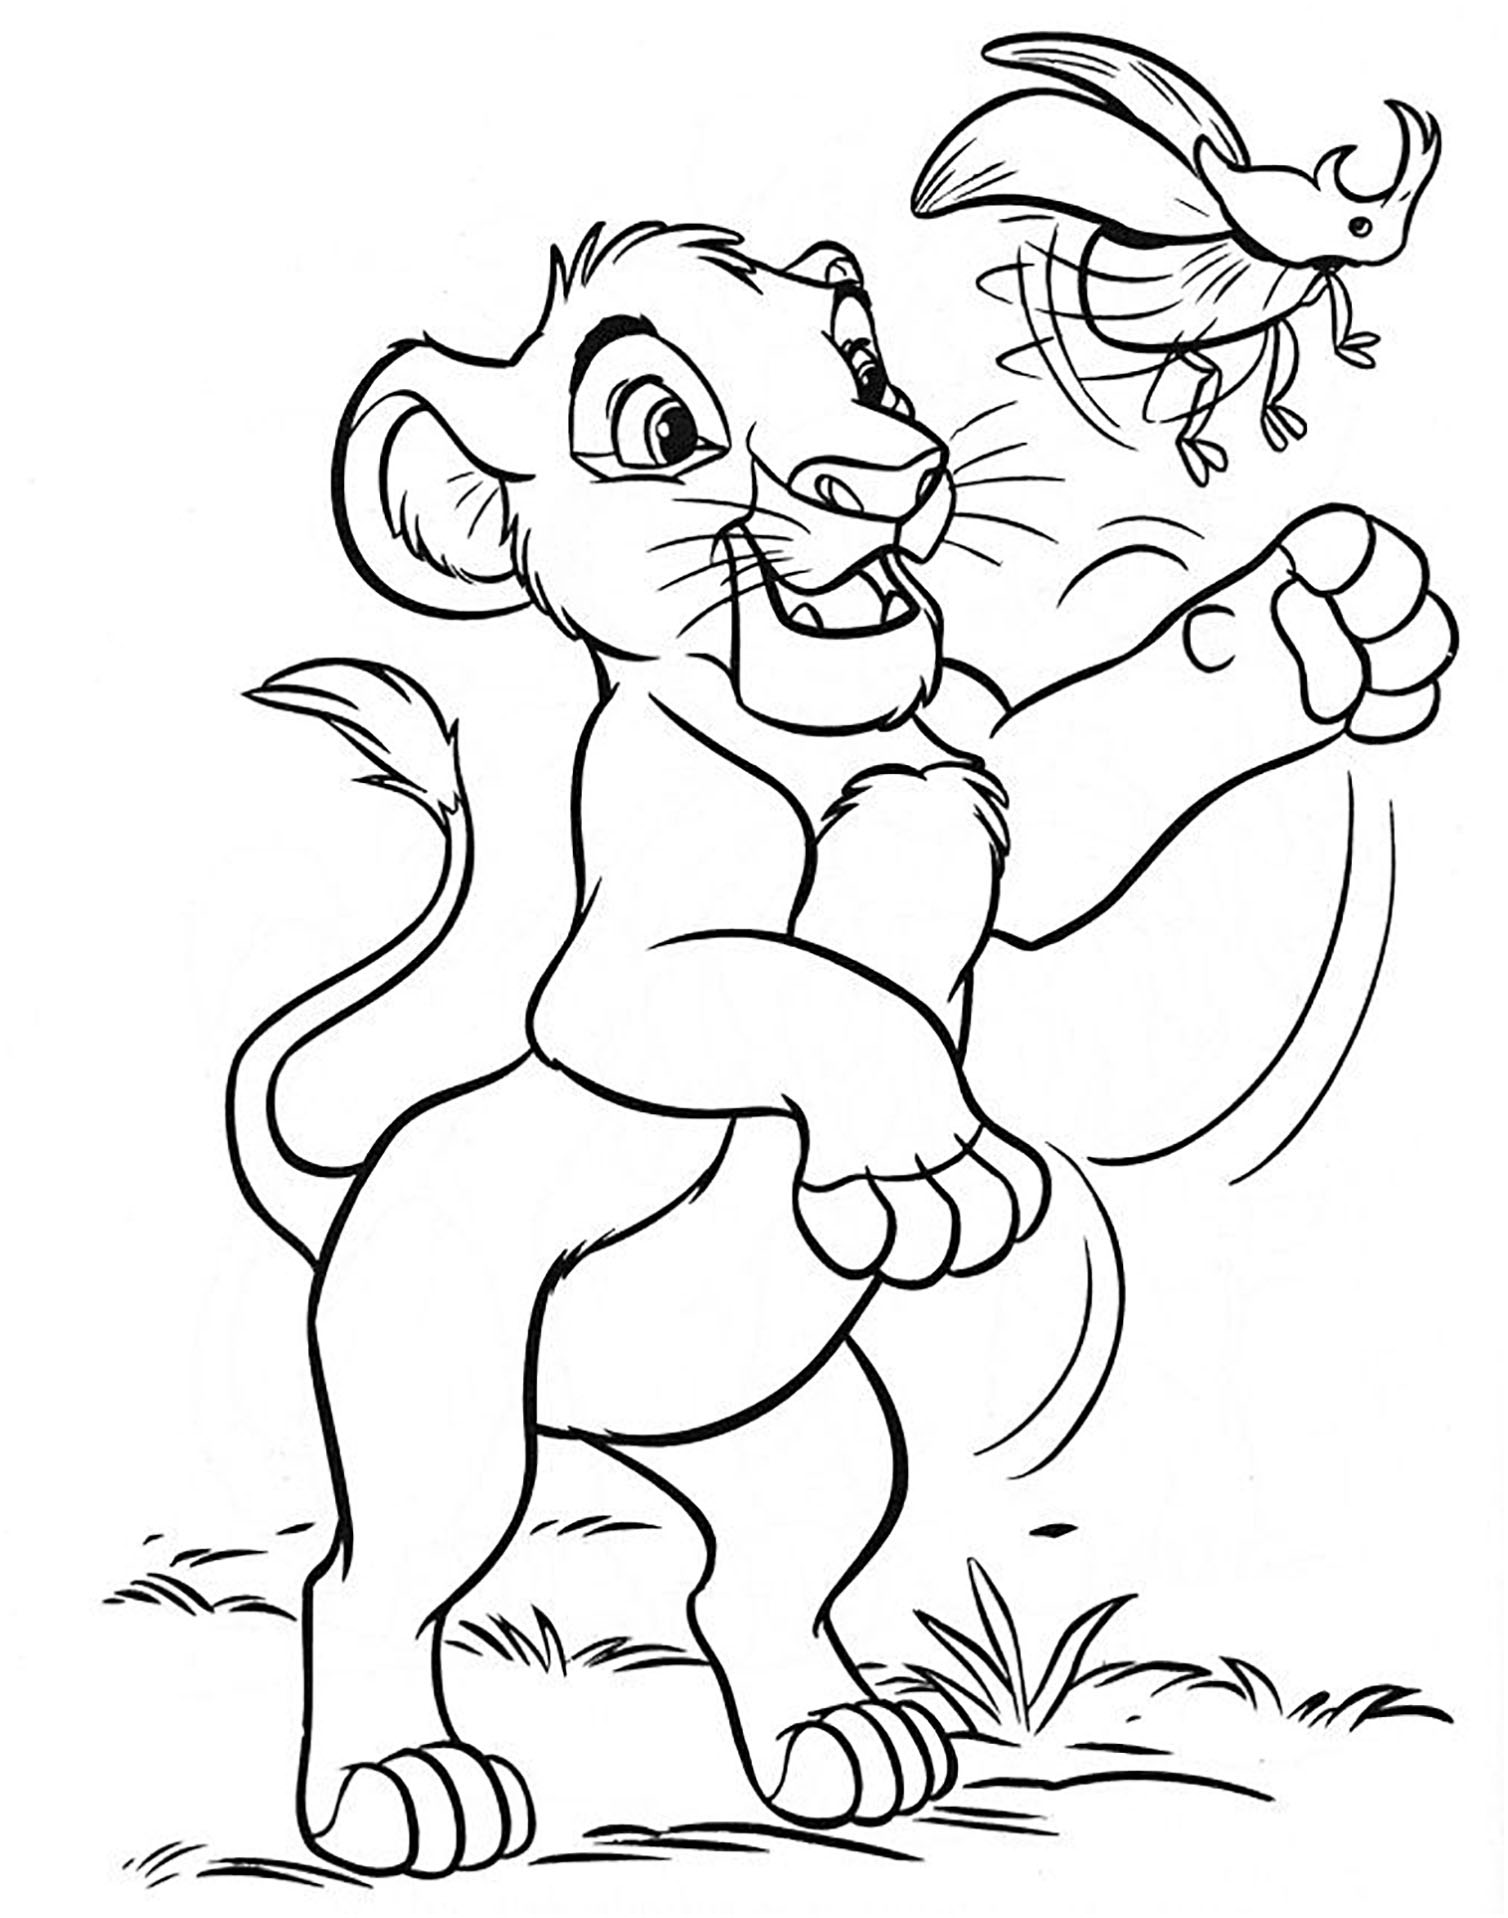 coloring pages lion king the lion king coloring pages 2 disneyclipscom pages lion king coloring